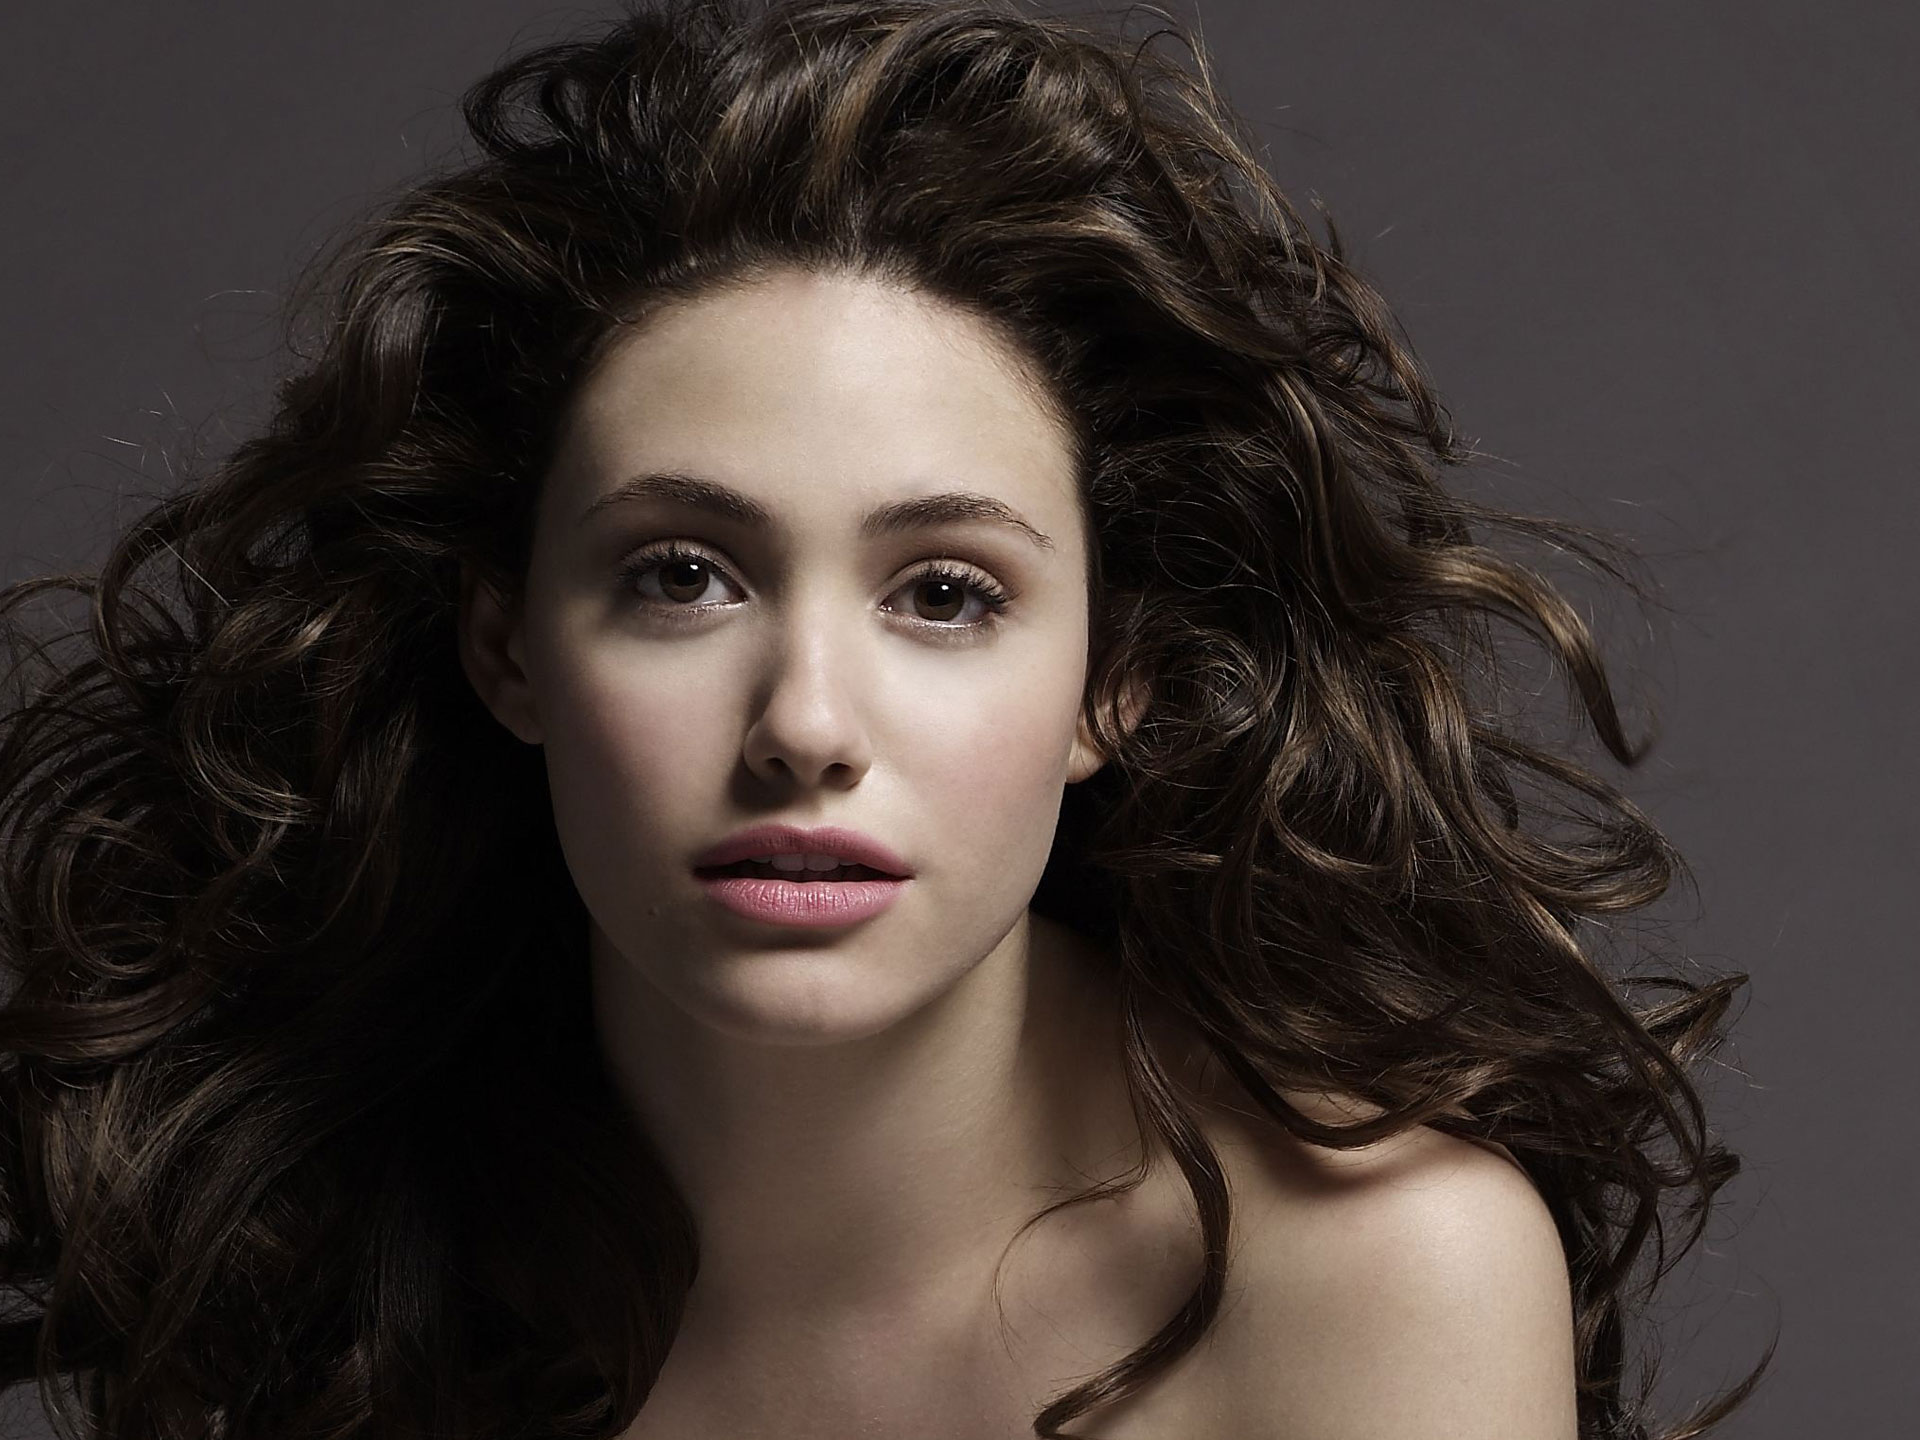 emmy rossum images emmy rossum hd wallpaper and background photos